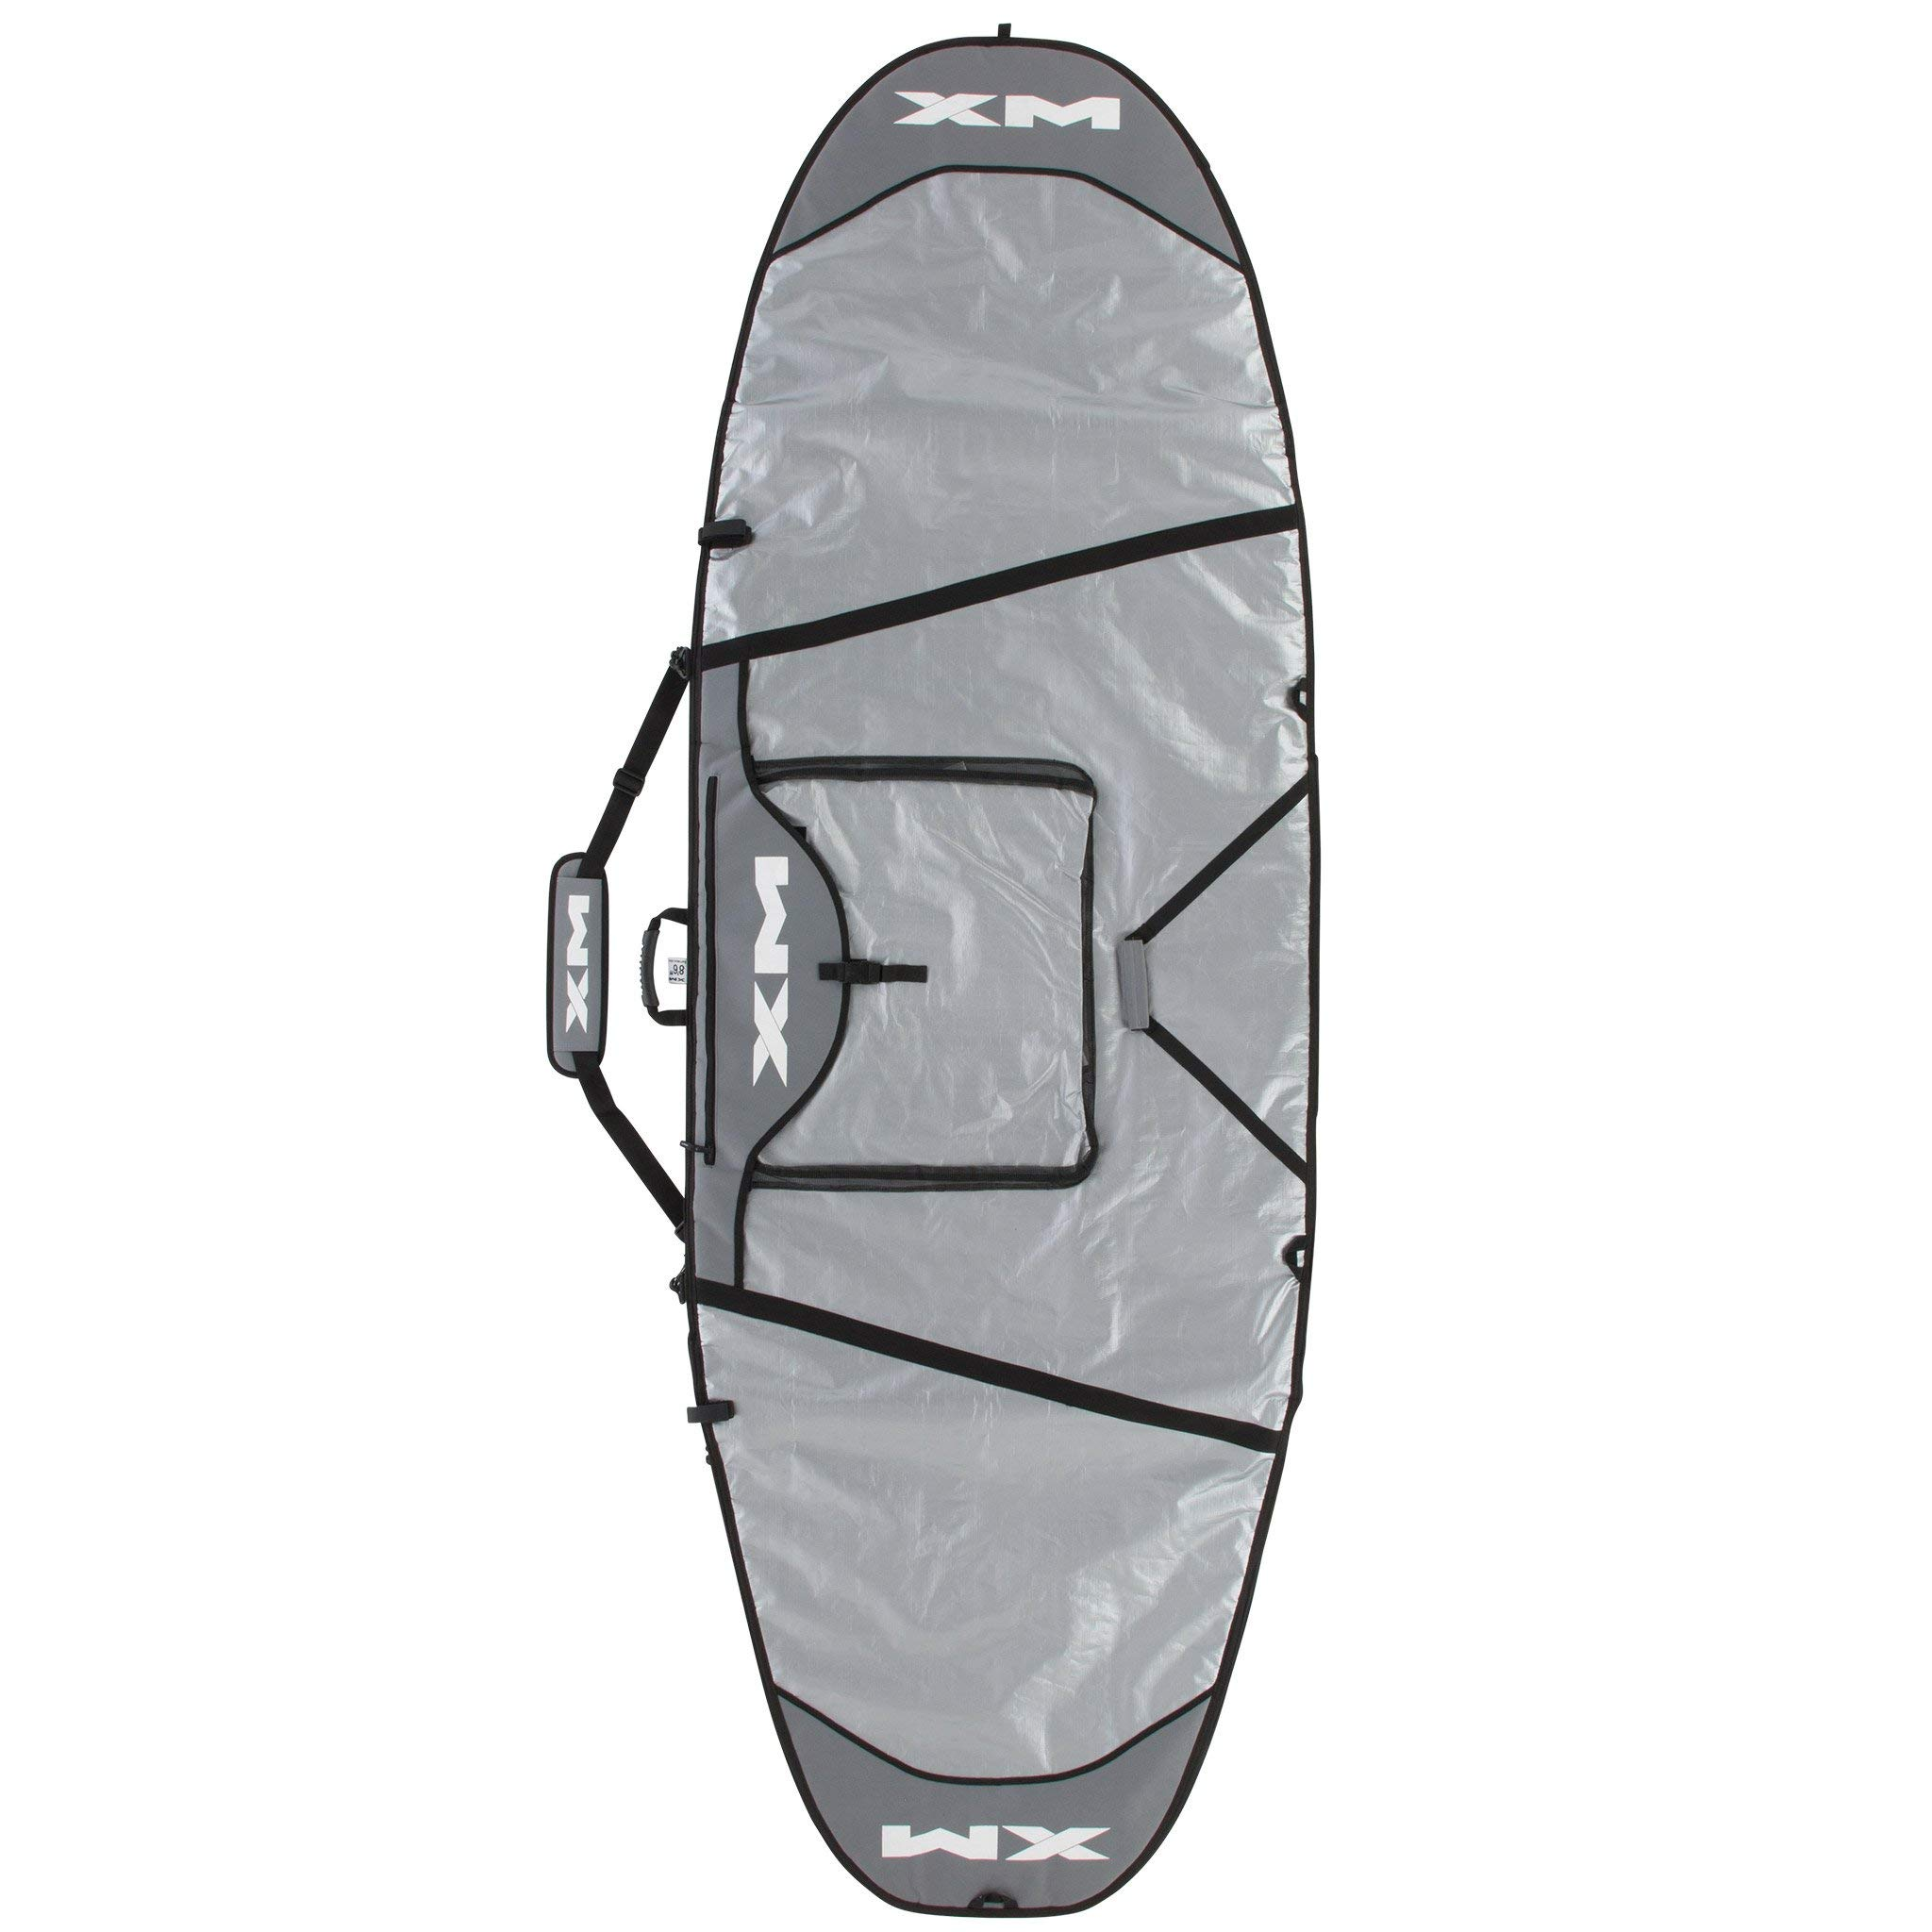 XM Stand UP Paddle (SUP) Board Day Bag / 10MM Ultra Durable Padding/Big Pocket by XM | SURF MORE